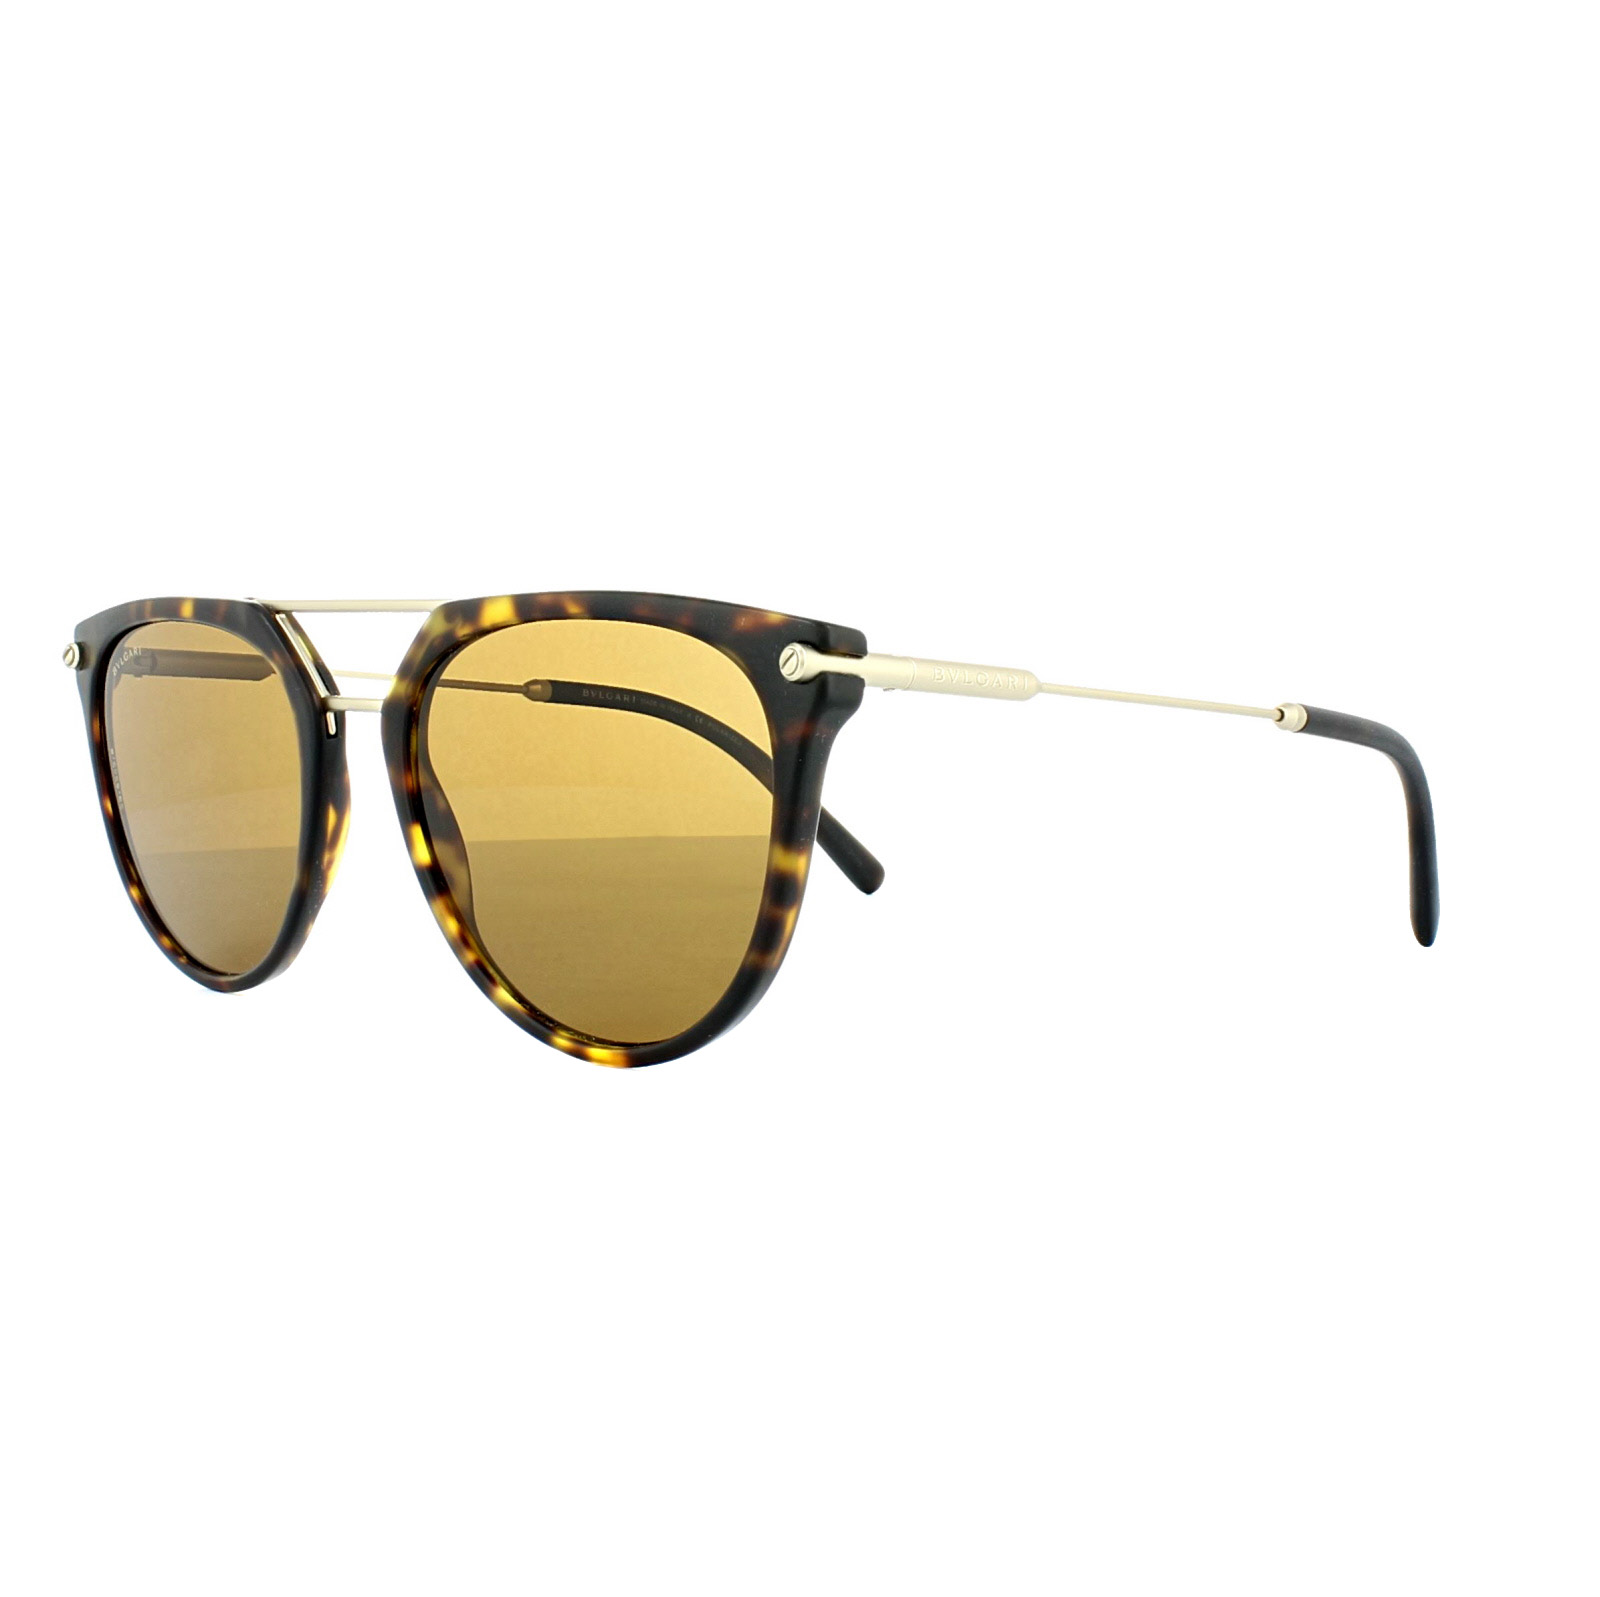 06c566a179 Sentinel Bvlgari Sunglasses 7029 5411 83 Matt Dark Havana Gold Brown  Polarized